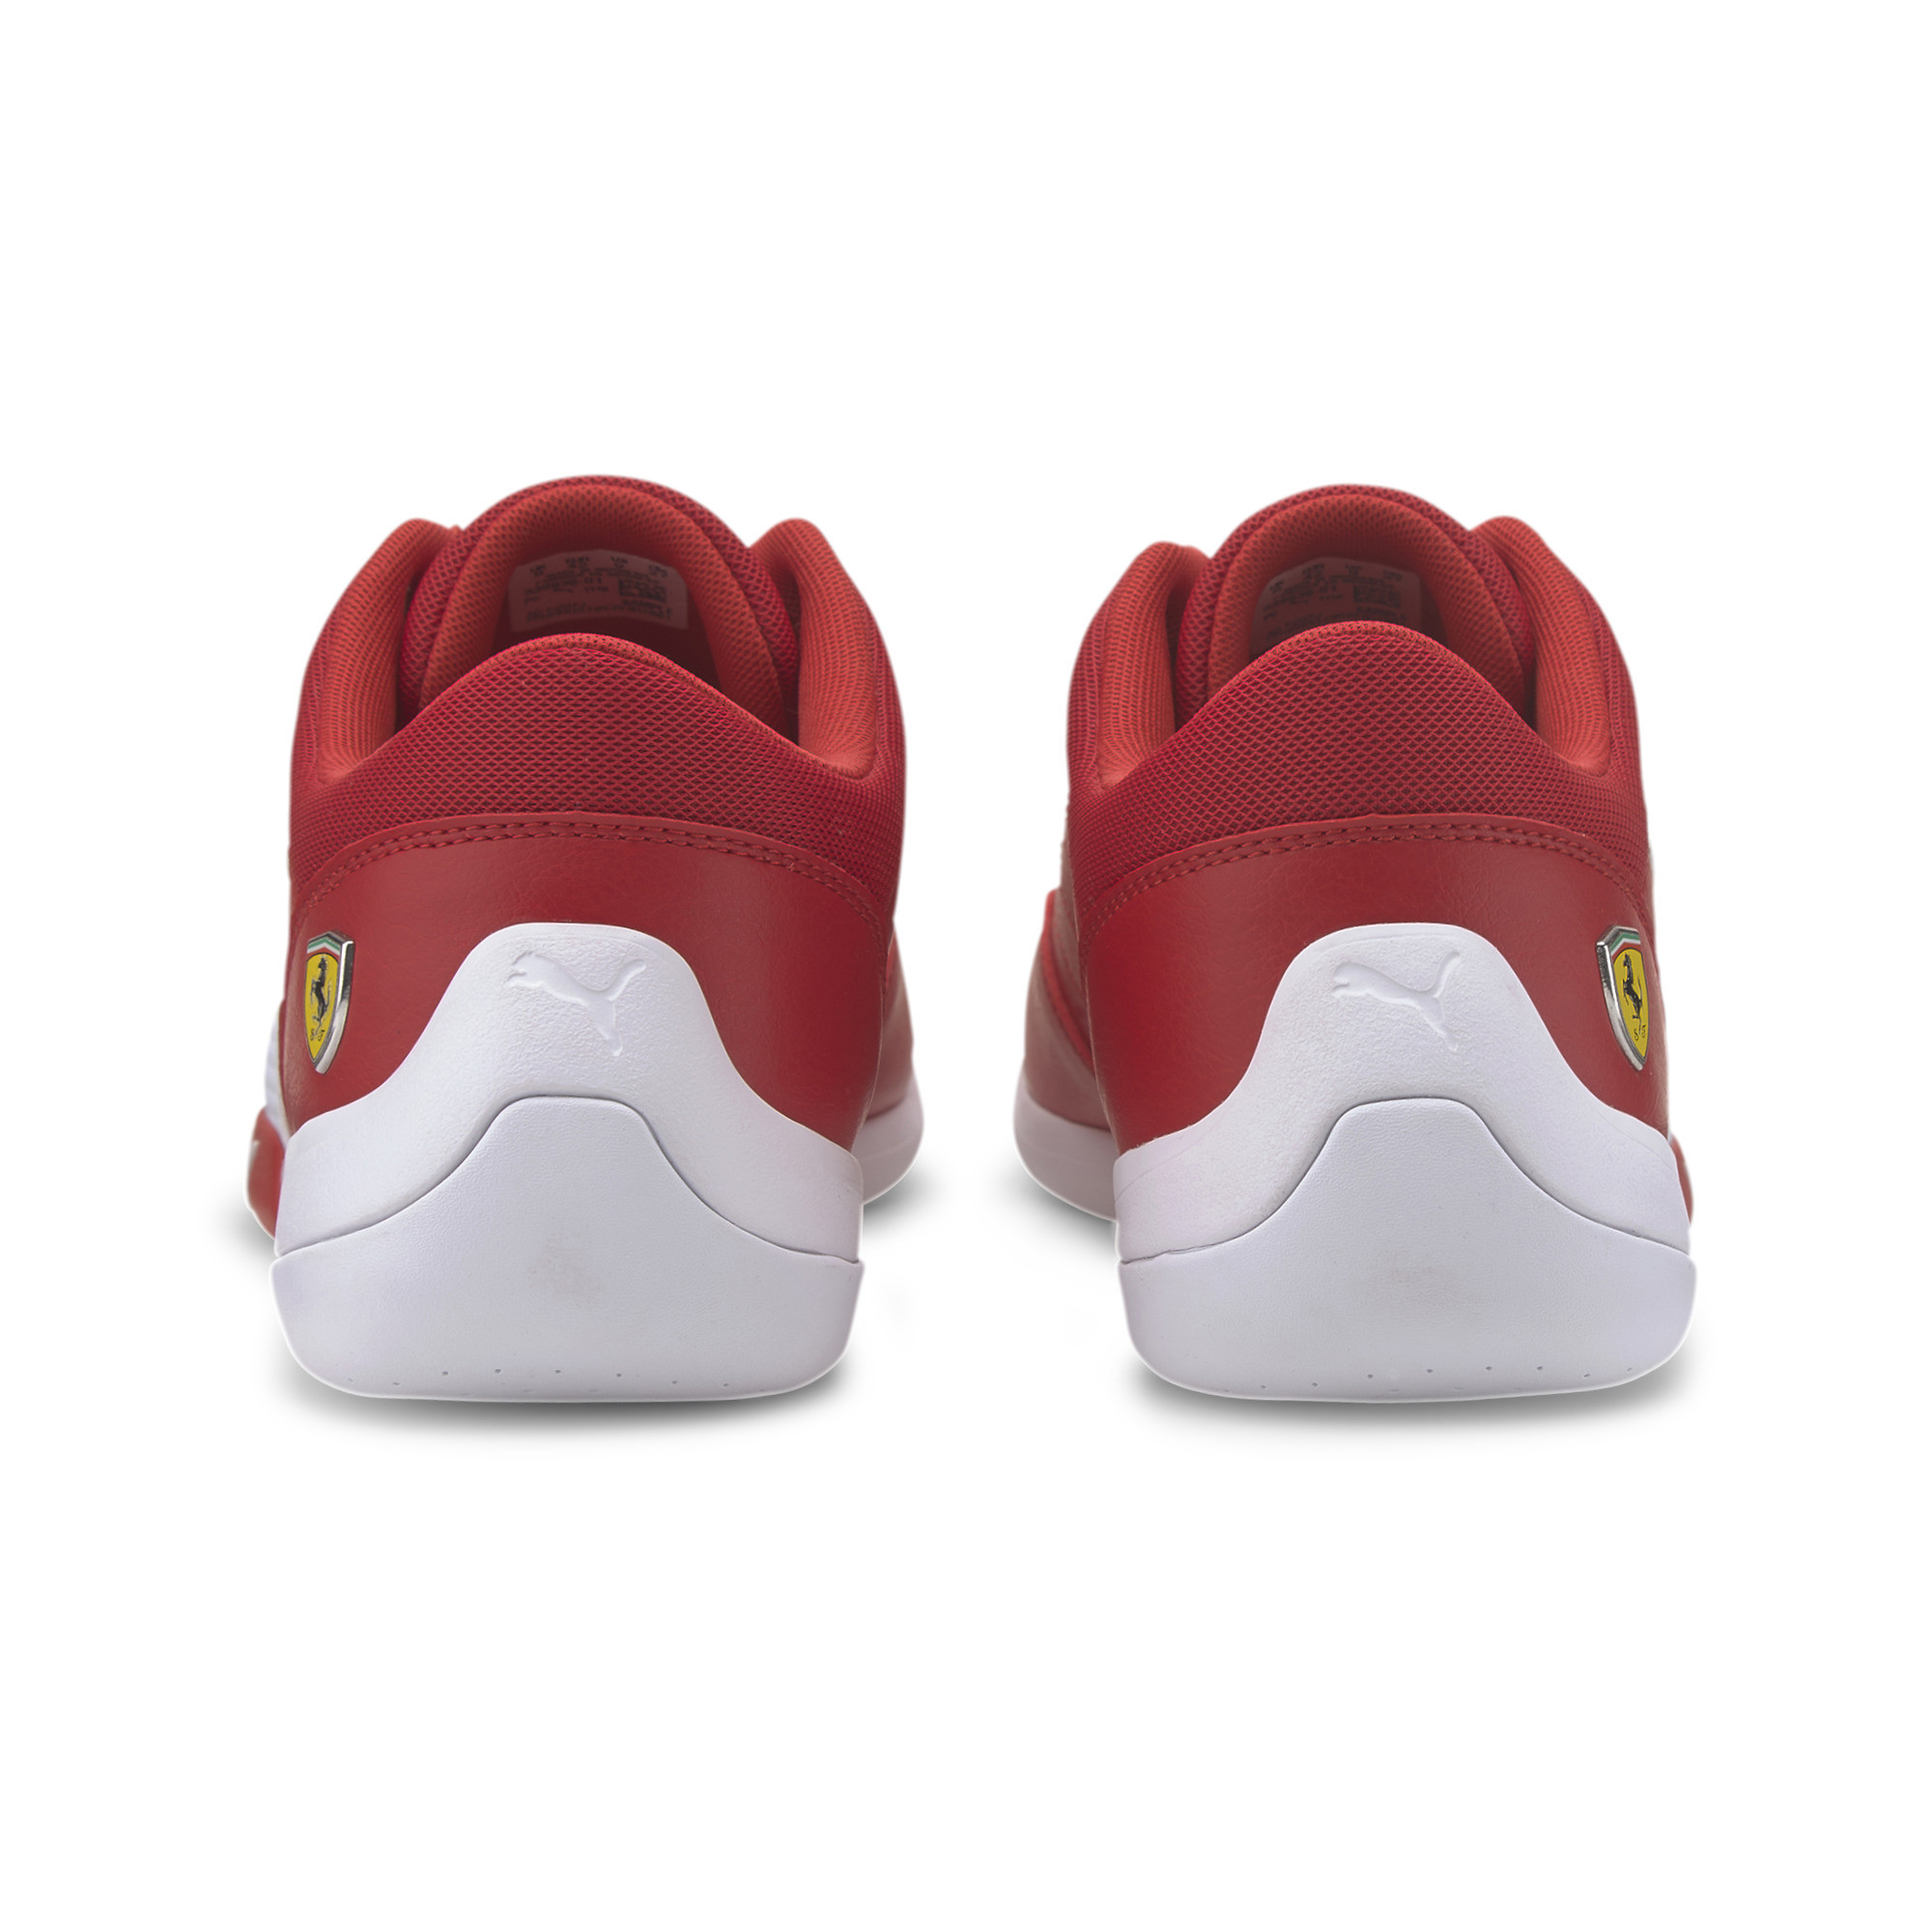 PUMA-Men-039-s-Scuderia-Ferrari-Kart-Cat-III-Motorsport-Shoes thumbnail 17